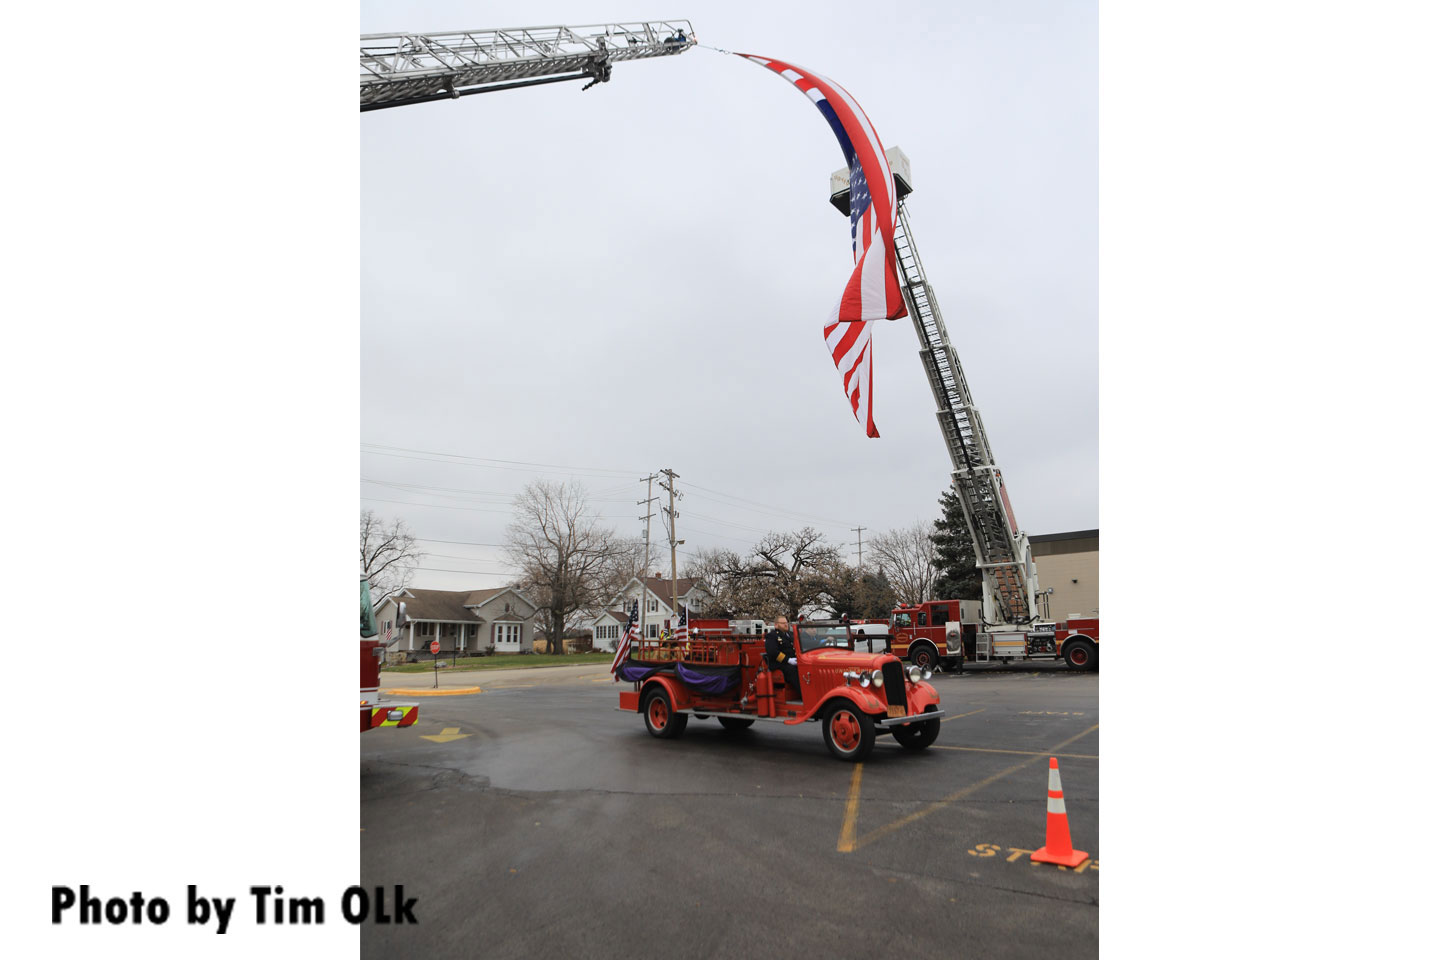 A photo of the old apparatus beneath the flag